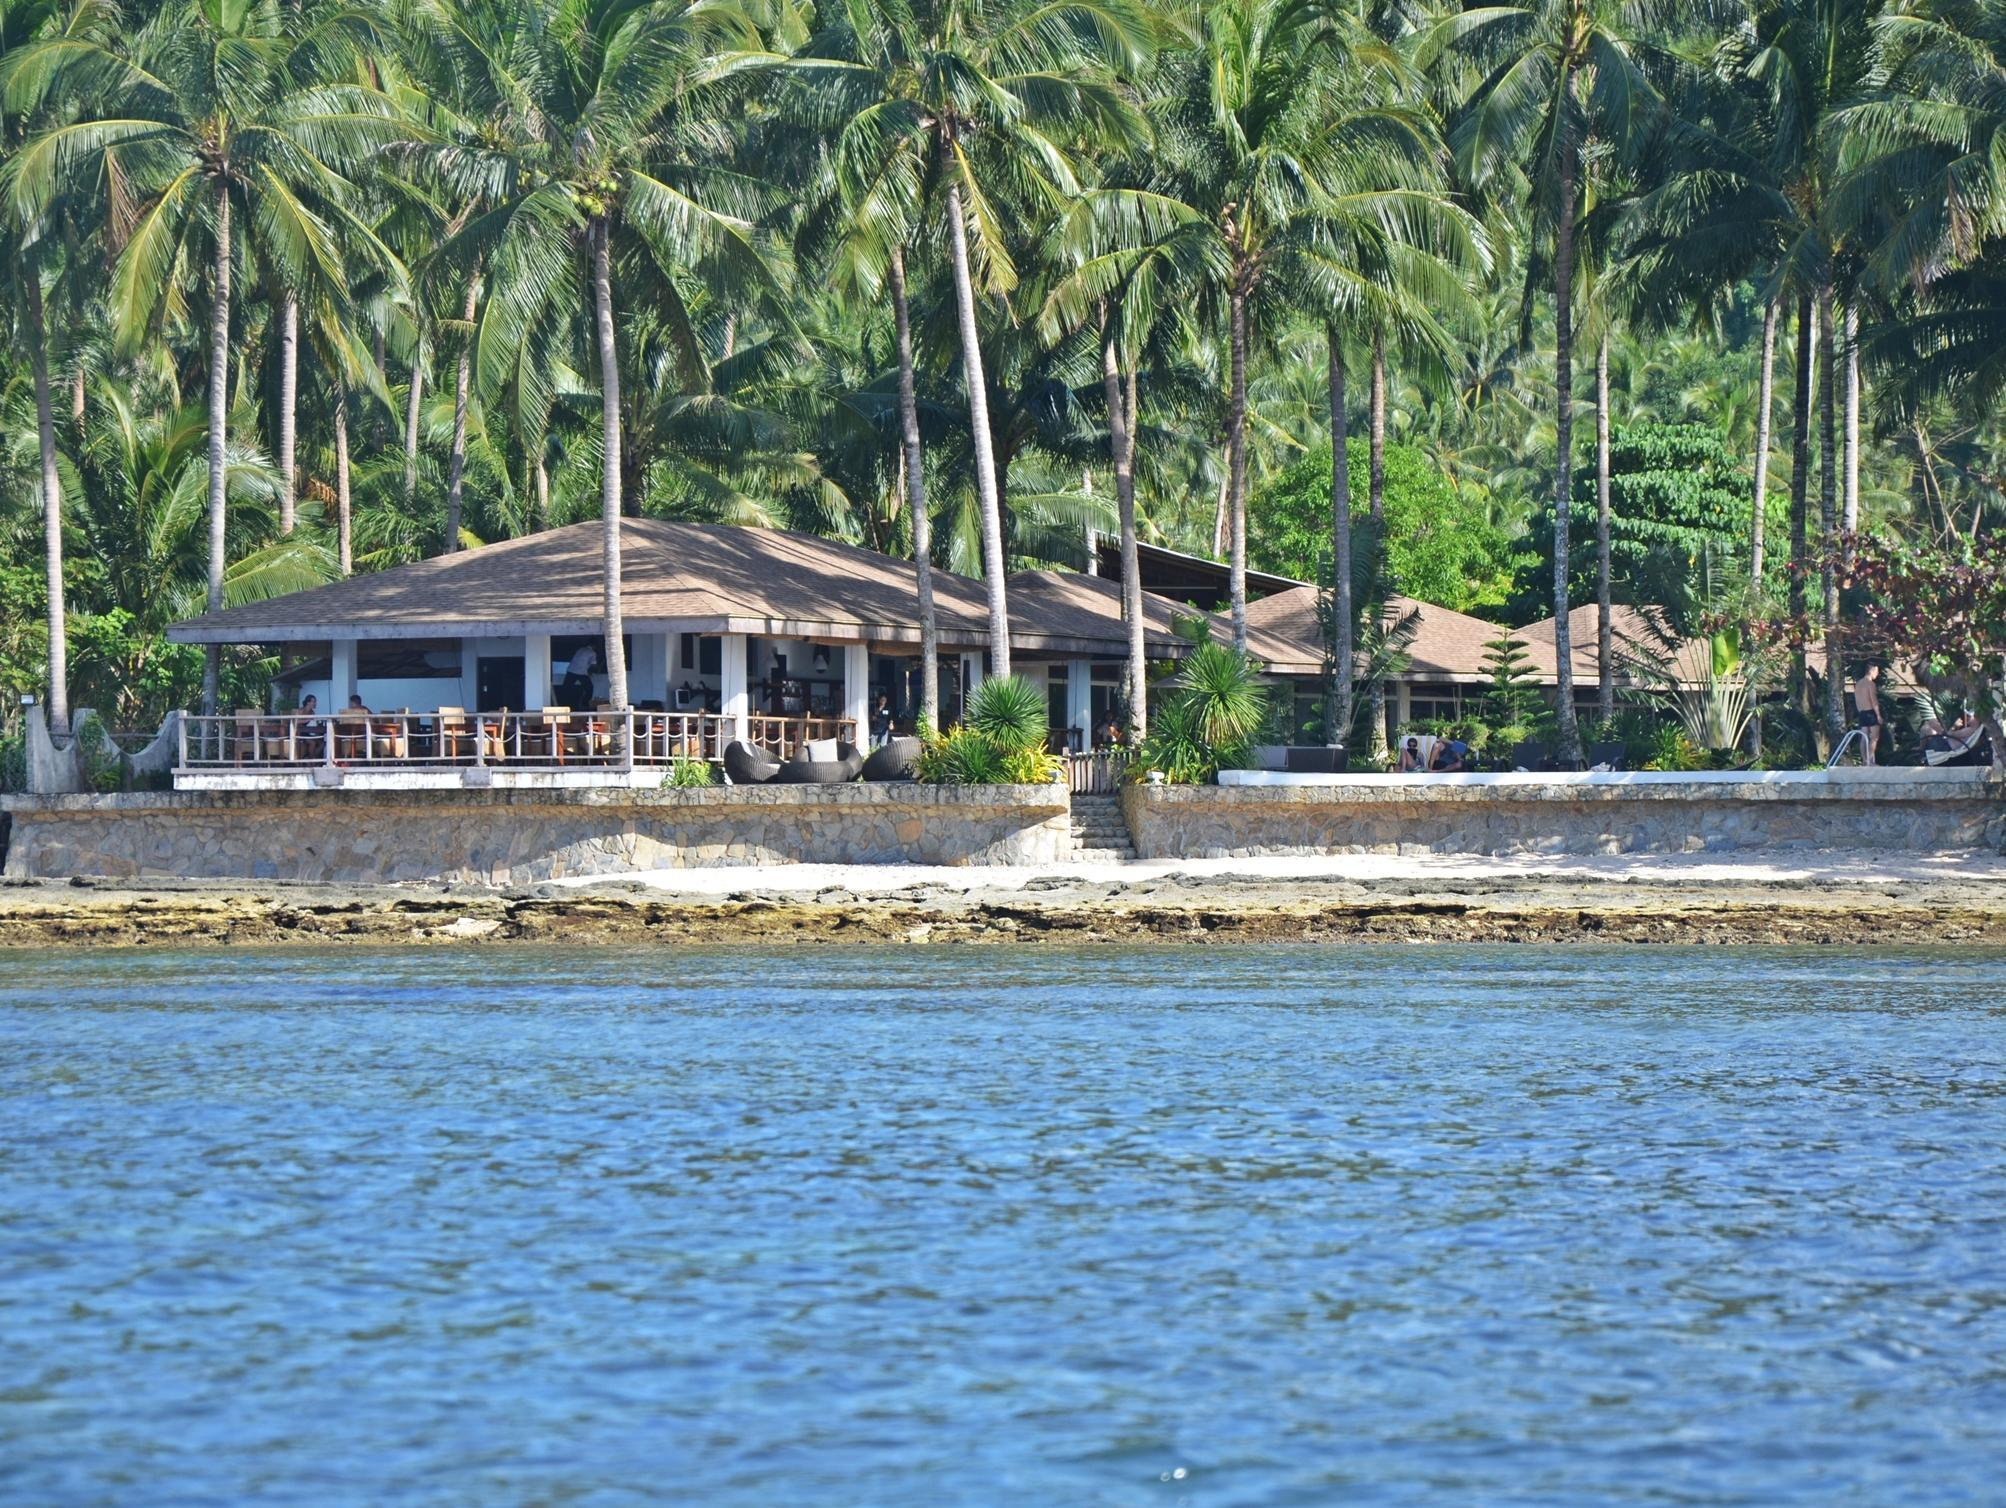 Cadlao Resort and Restaurant19